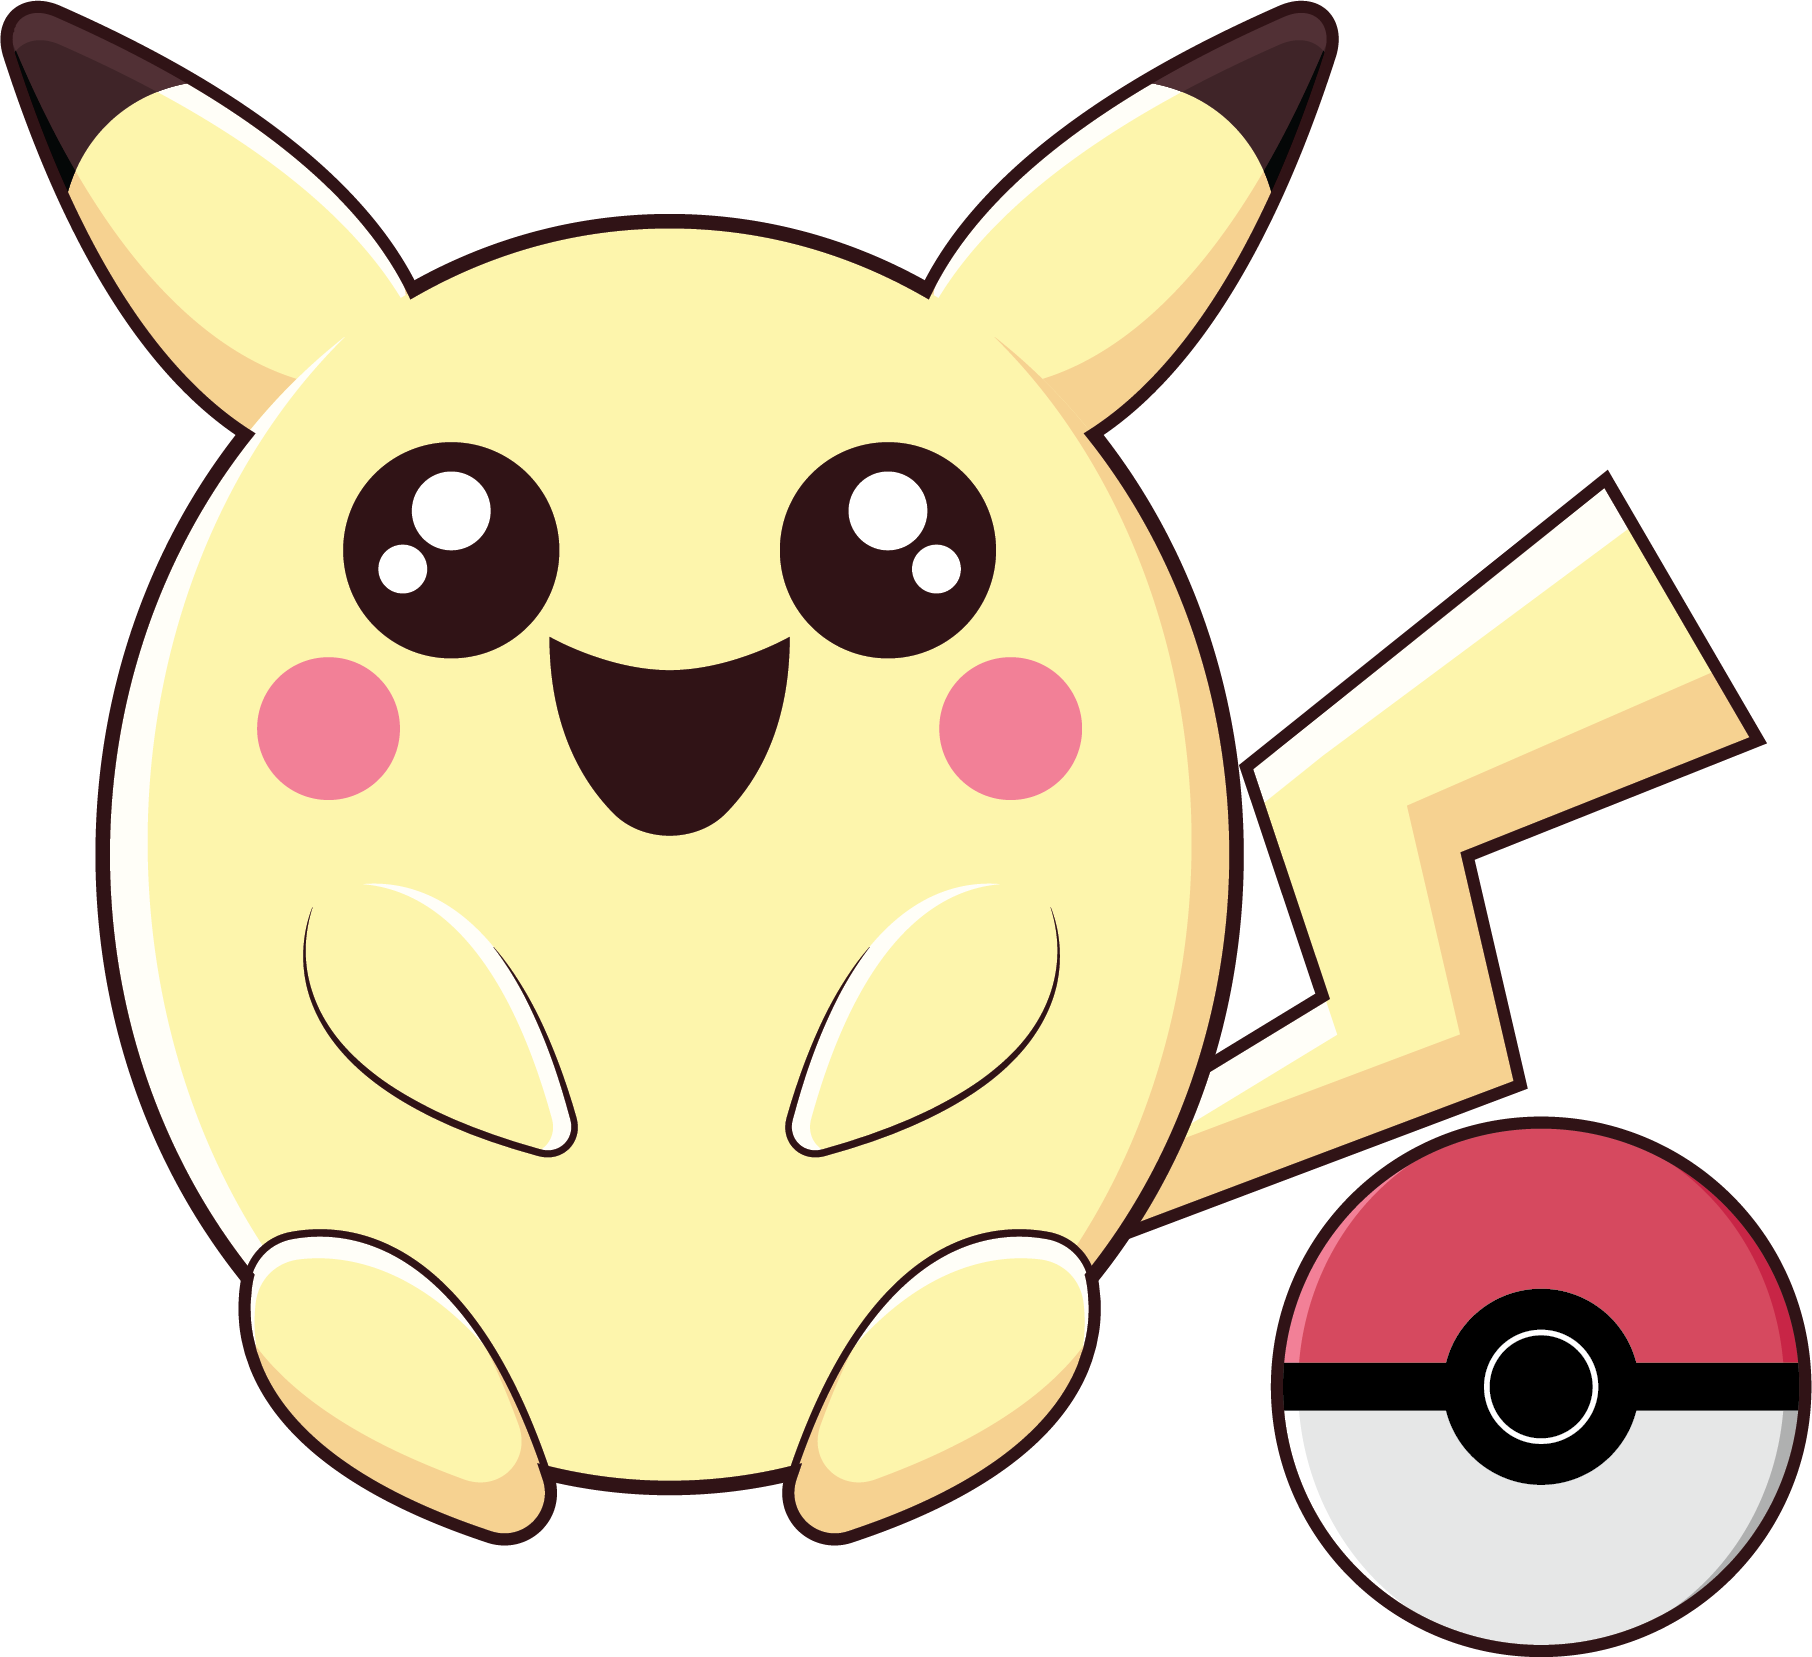 1812x1657 Pokemon Png Image Famous Anime Character Png Only